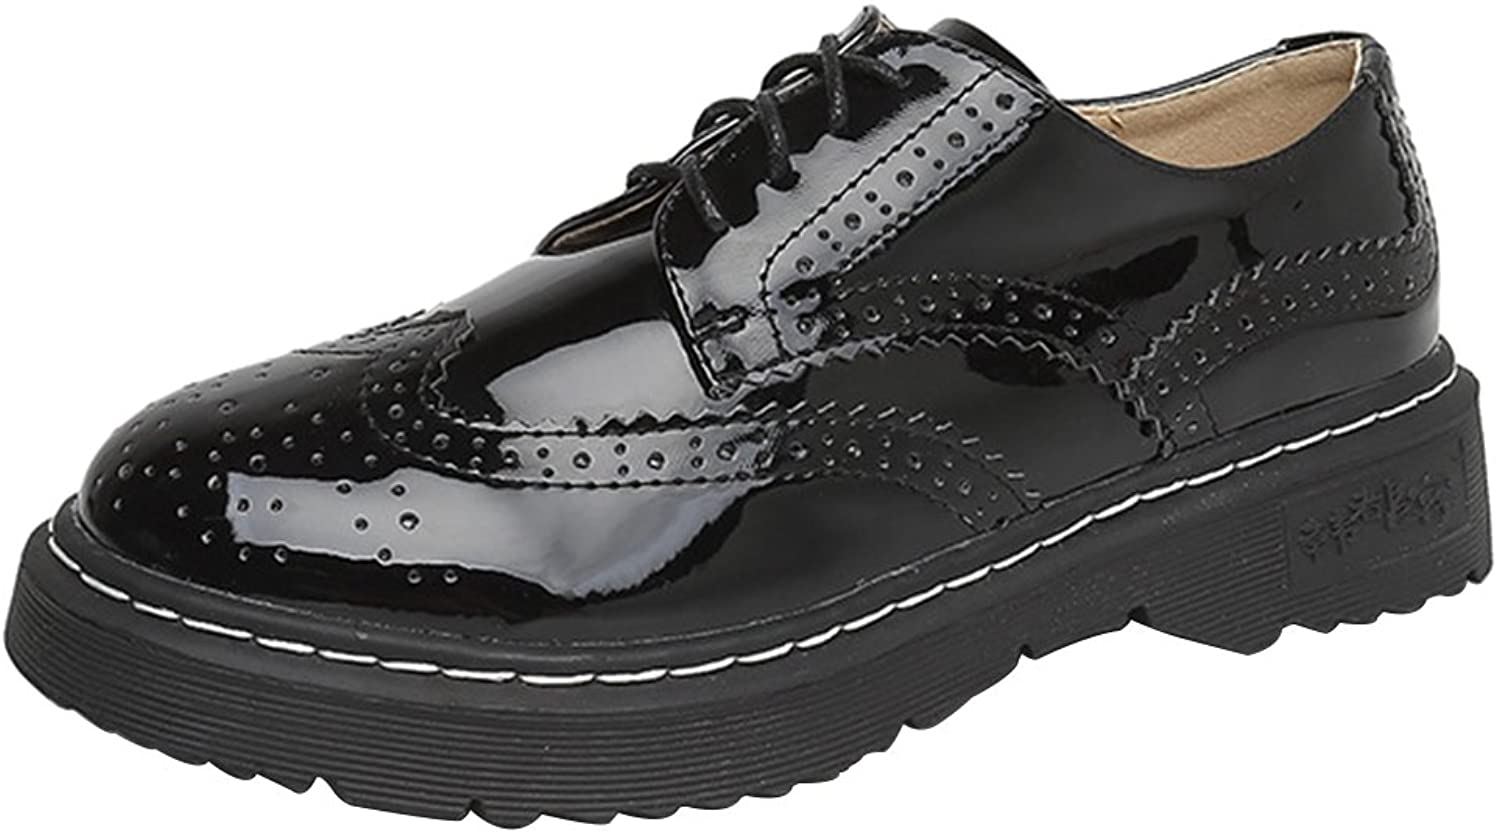 Sekesin Oxfords shoes Bullock Wingtips Patent Leather shoes Lace-Up Flats Round Toe